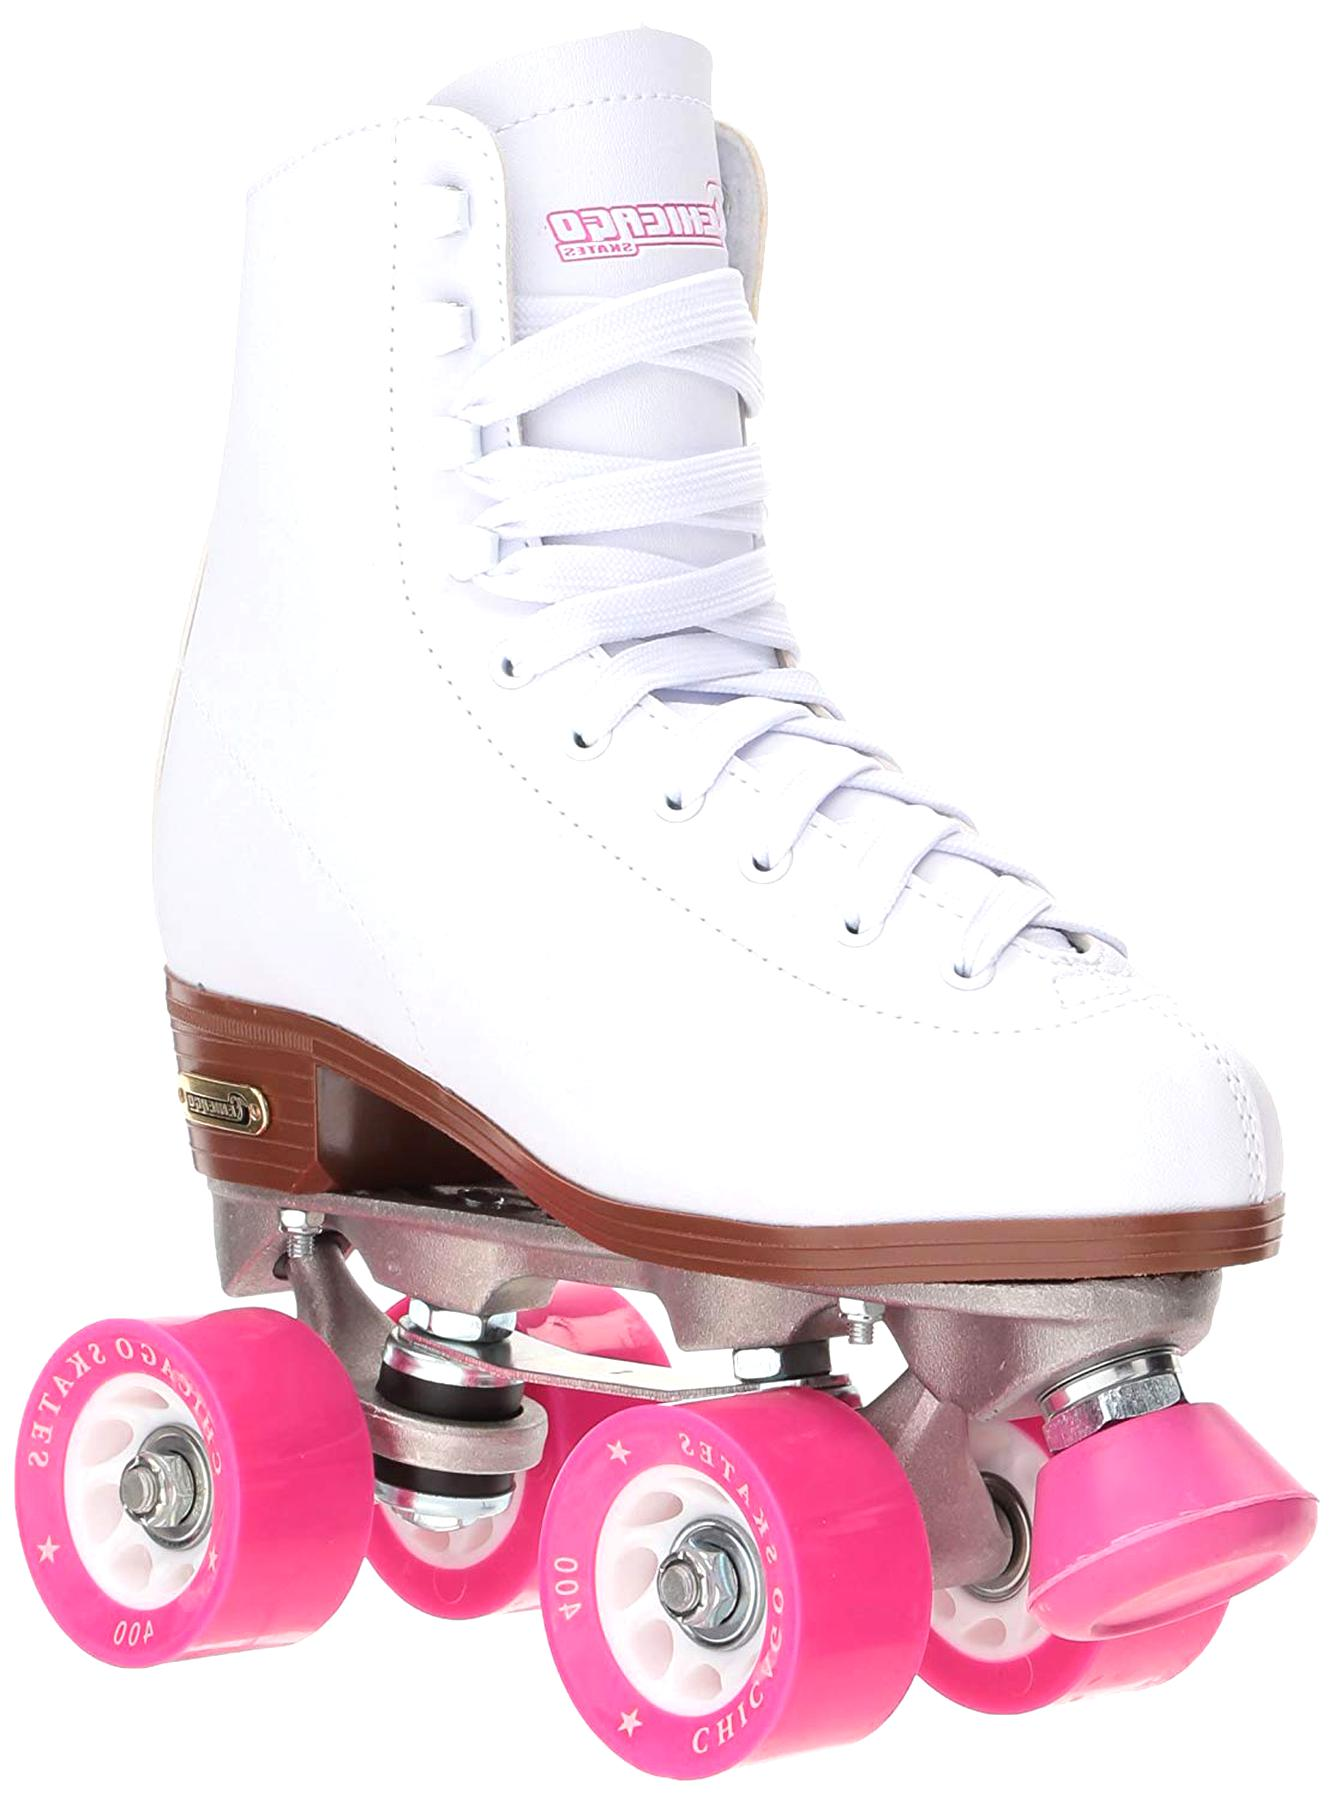 chicago roller skates for sale